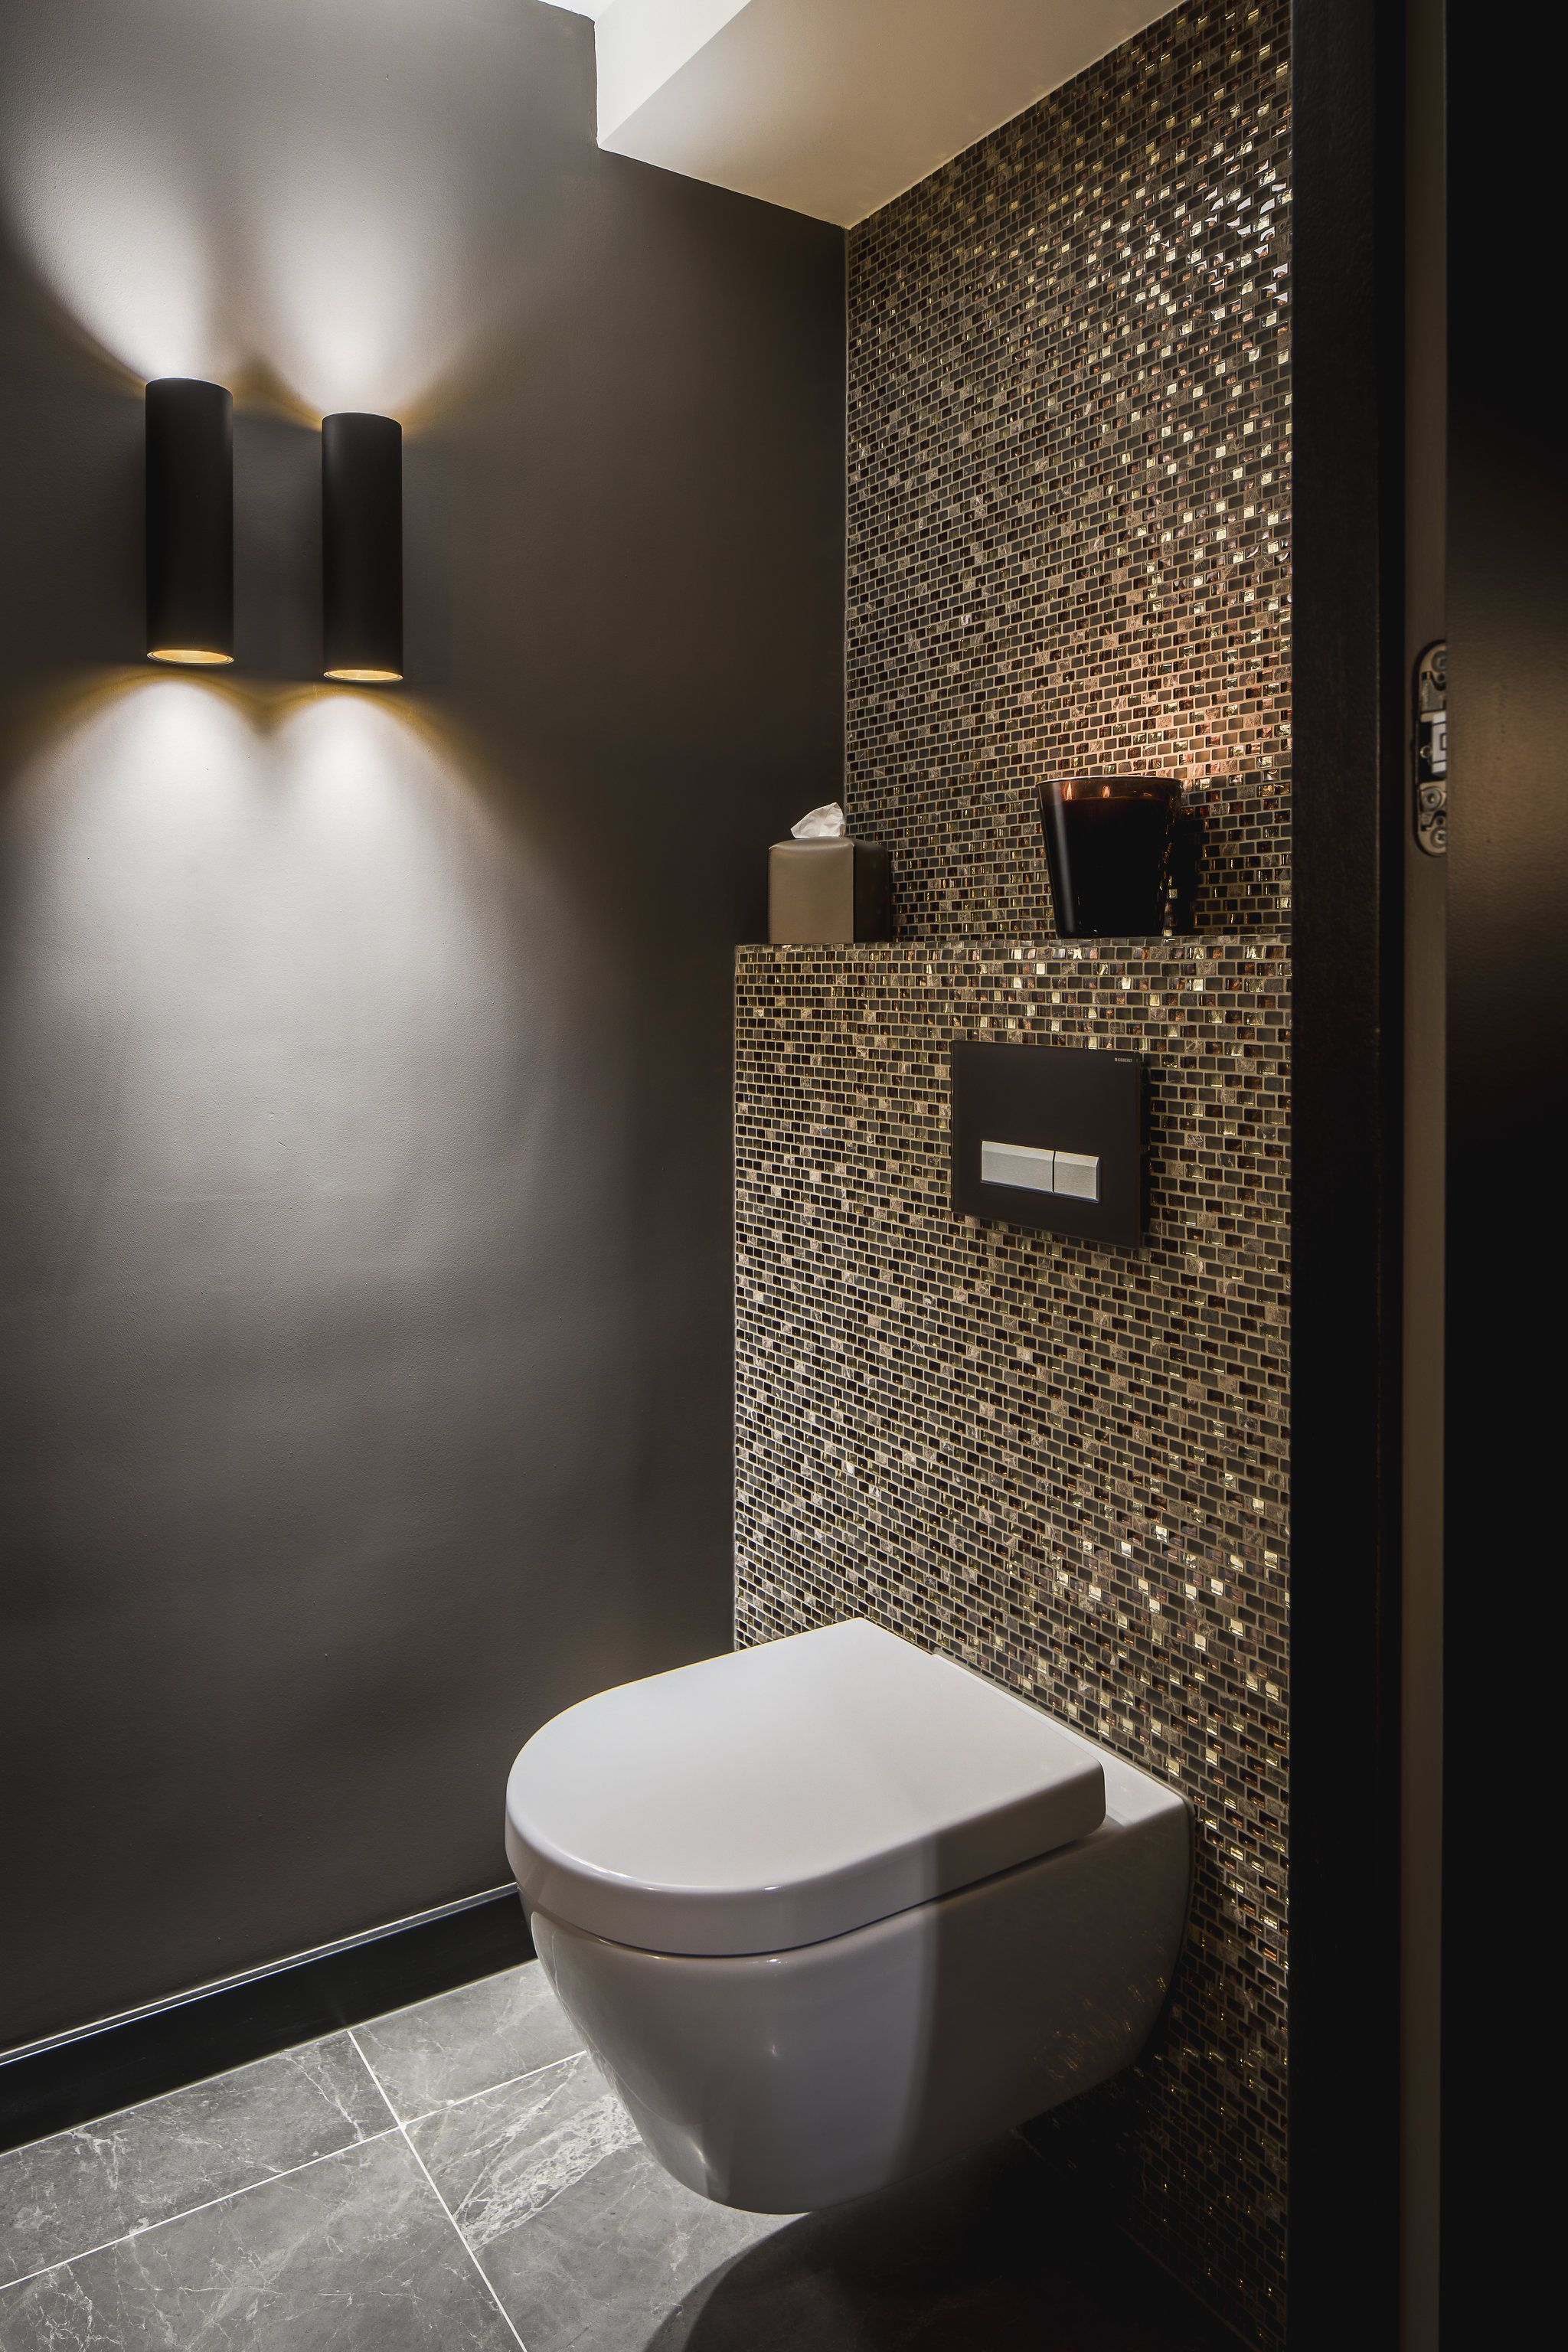 idee g ste wc mosaik glimmer dunkle w nde schimmer glas gold kombination fliese und. Black Bedroom Furniture Sets. Home Design Ideas